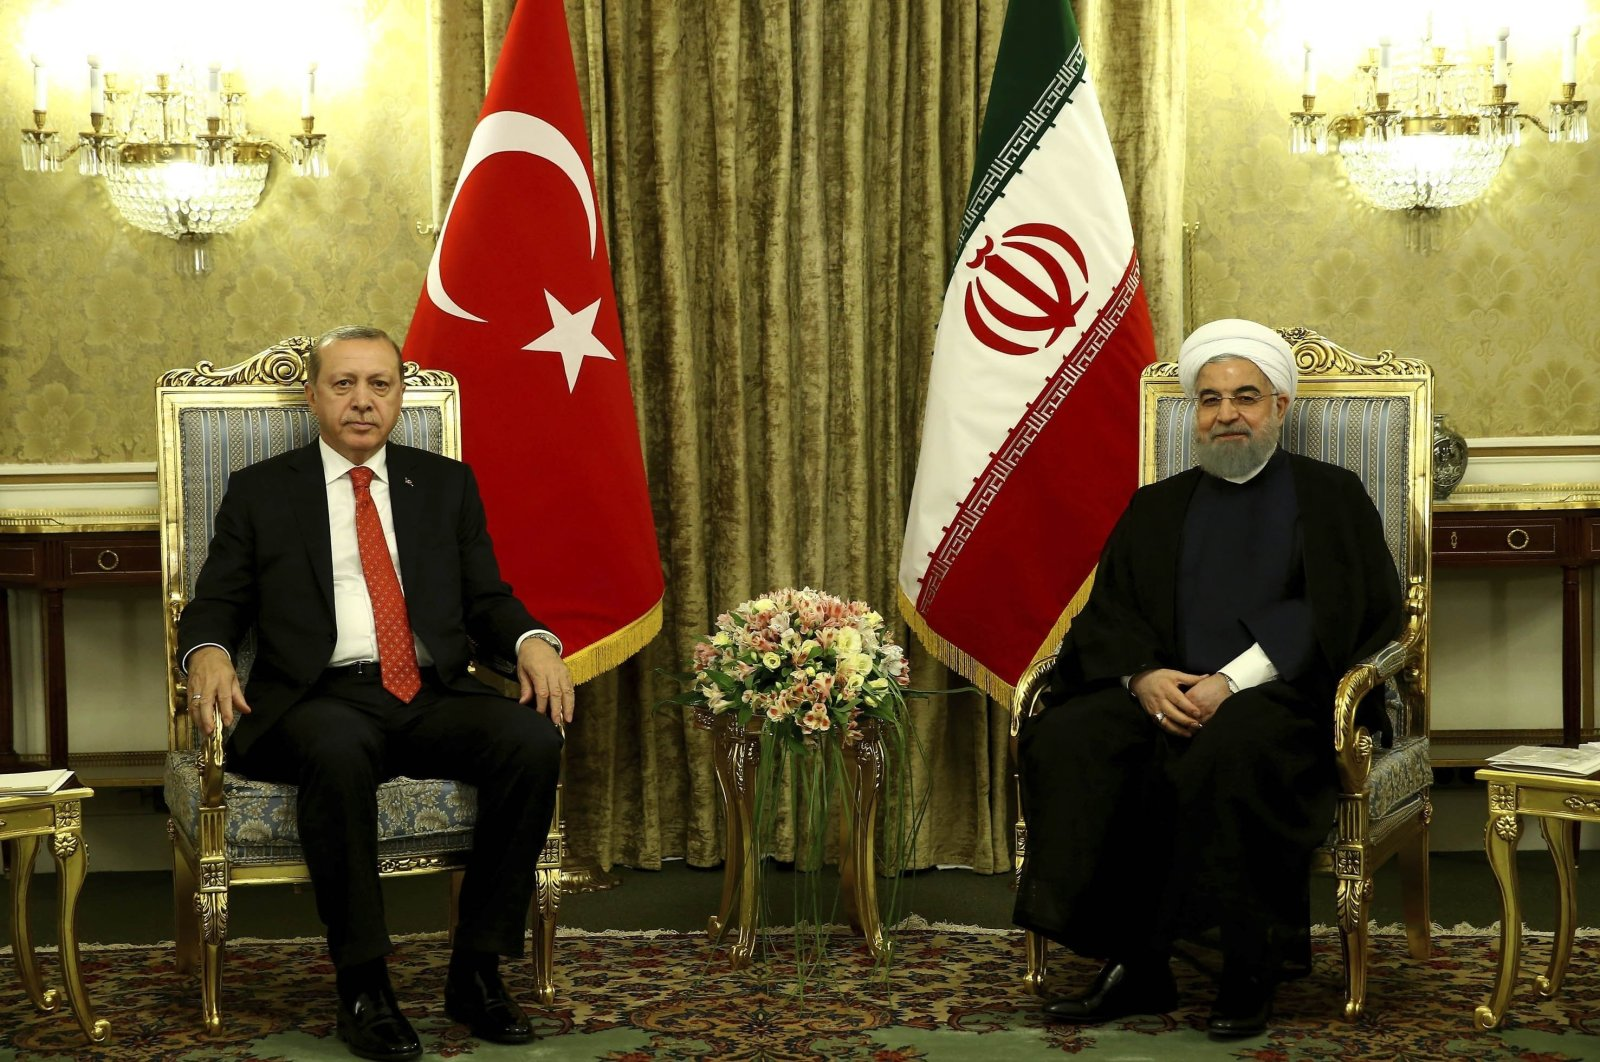 Turkish President Recep Tayyip Erdoğan (L) and Iranian President Hassan Rouhani are seen during a meeting in Tehran, Iran, Oct. 4, 2017. (AP Photo)